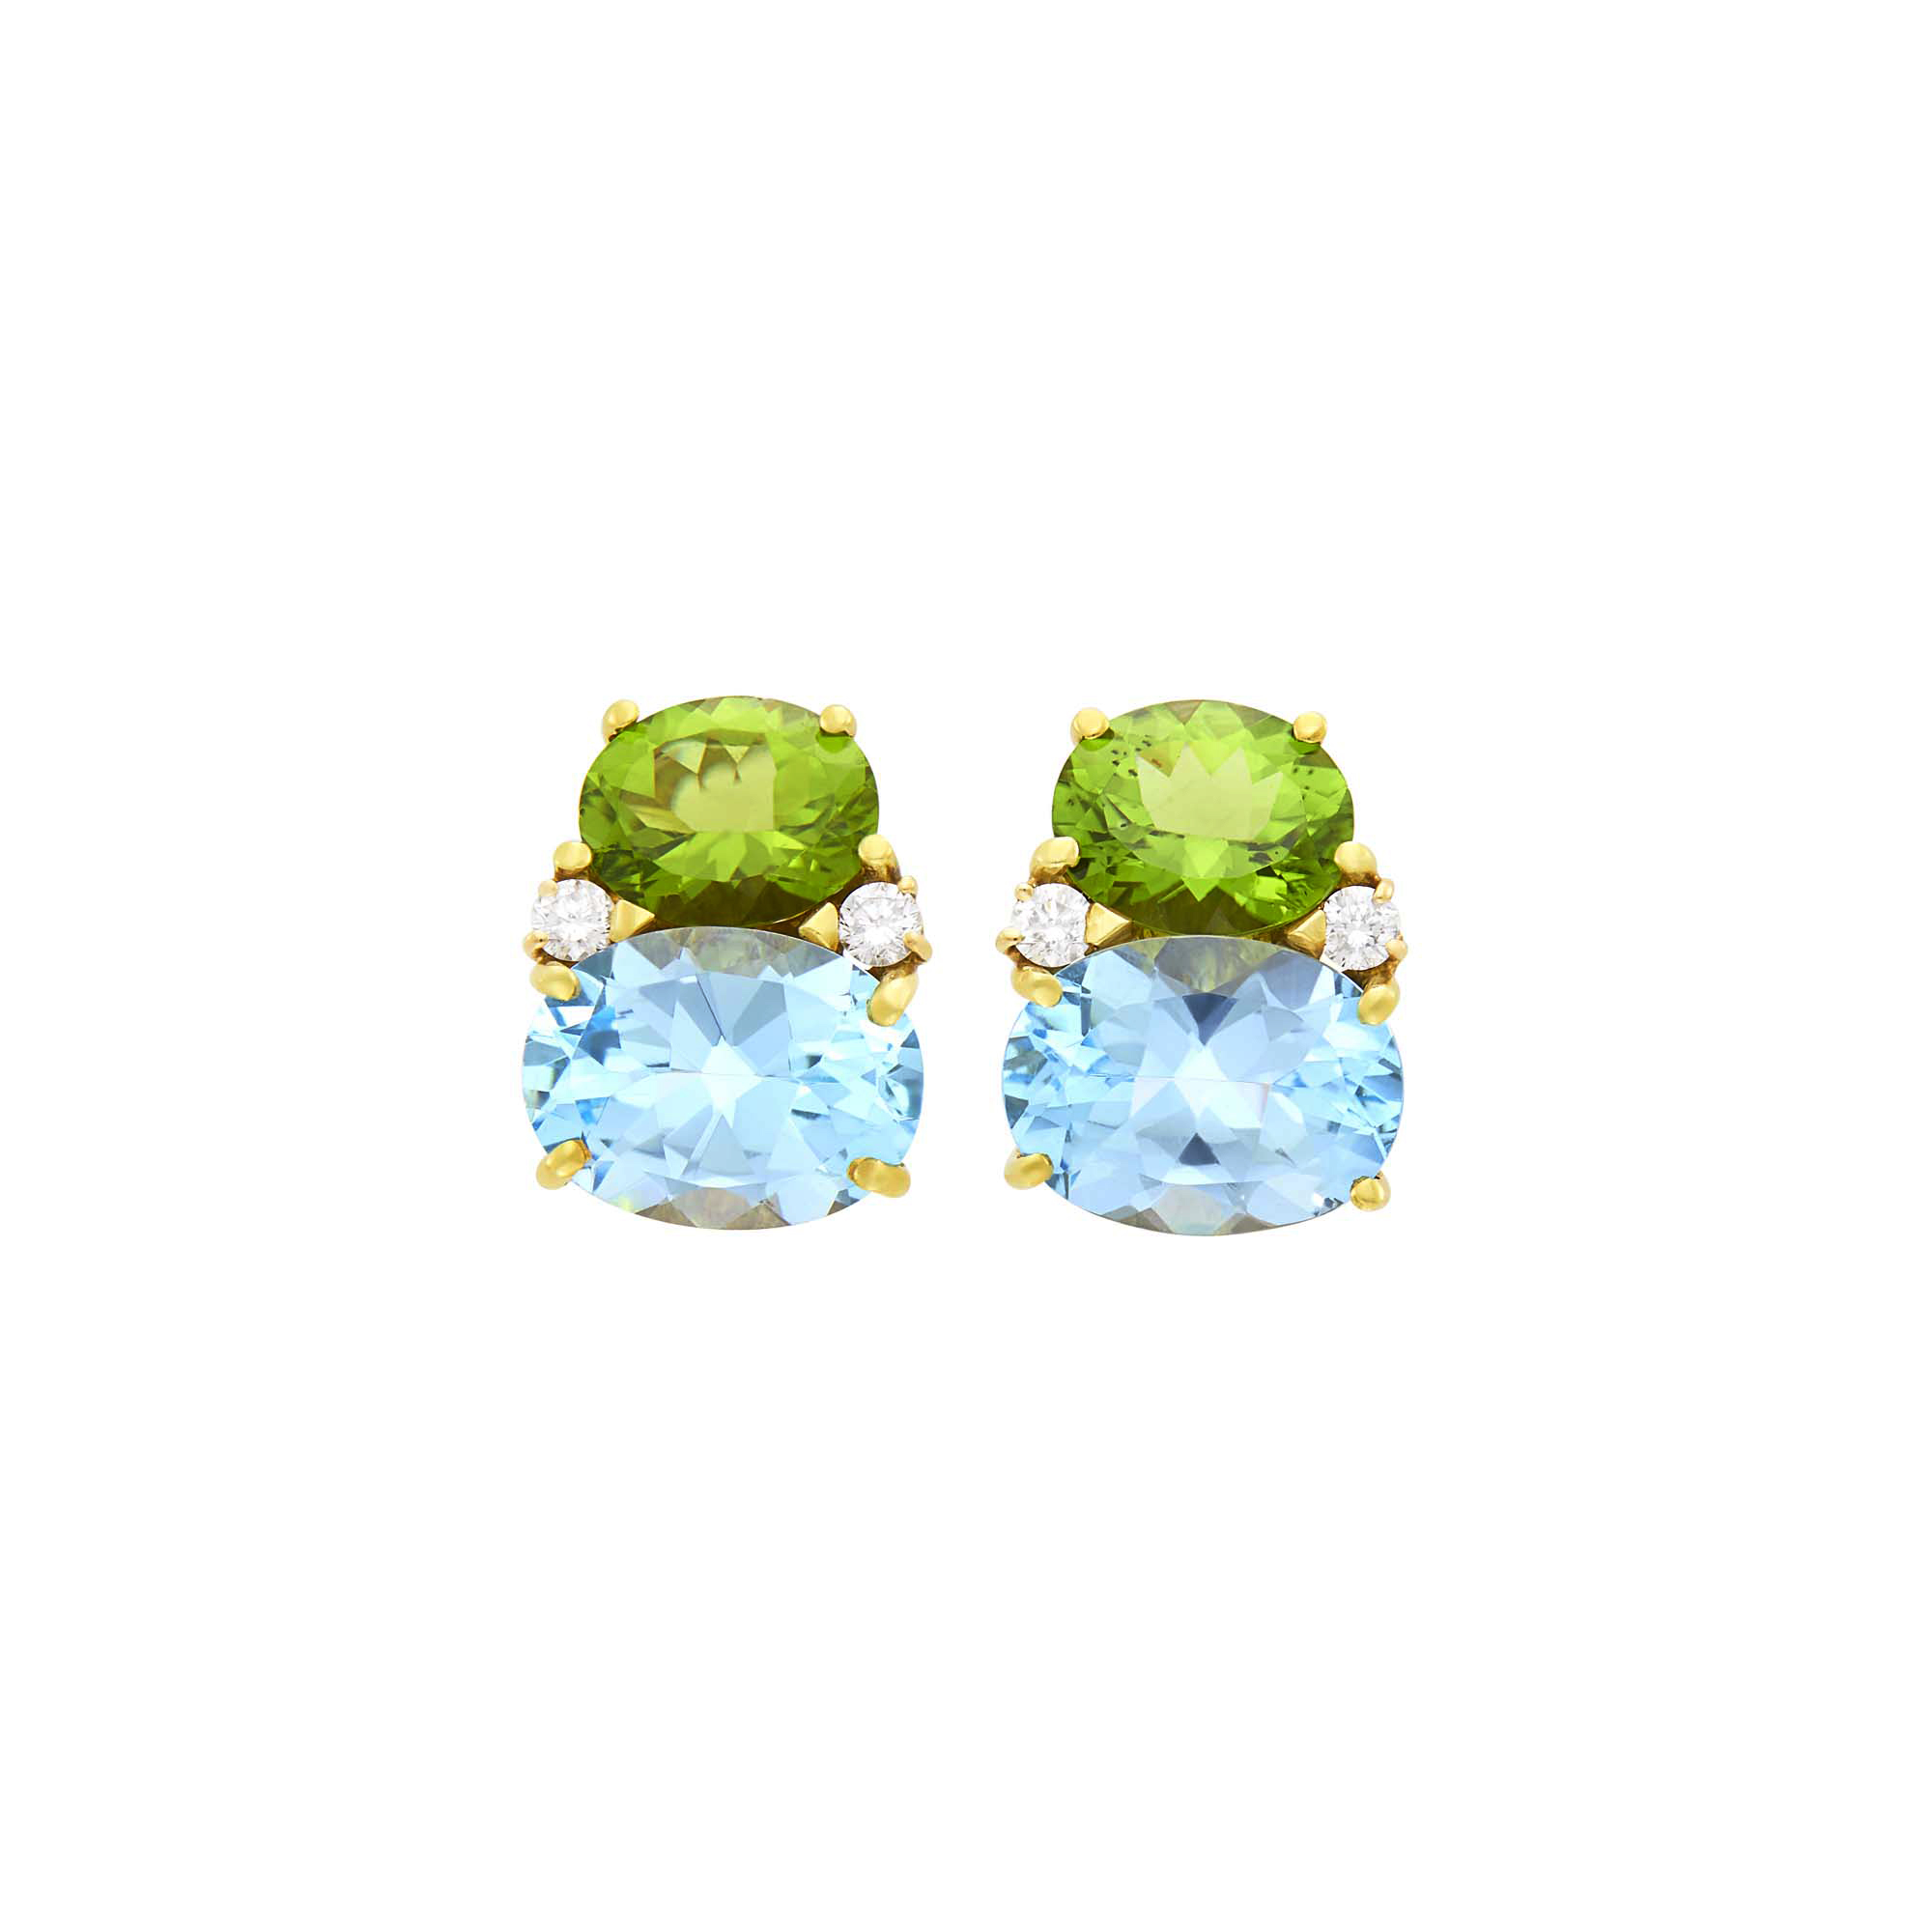 Lot image - Pair of Gold, Peridot, Blue Topaz and Diamond Earclips